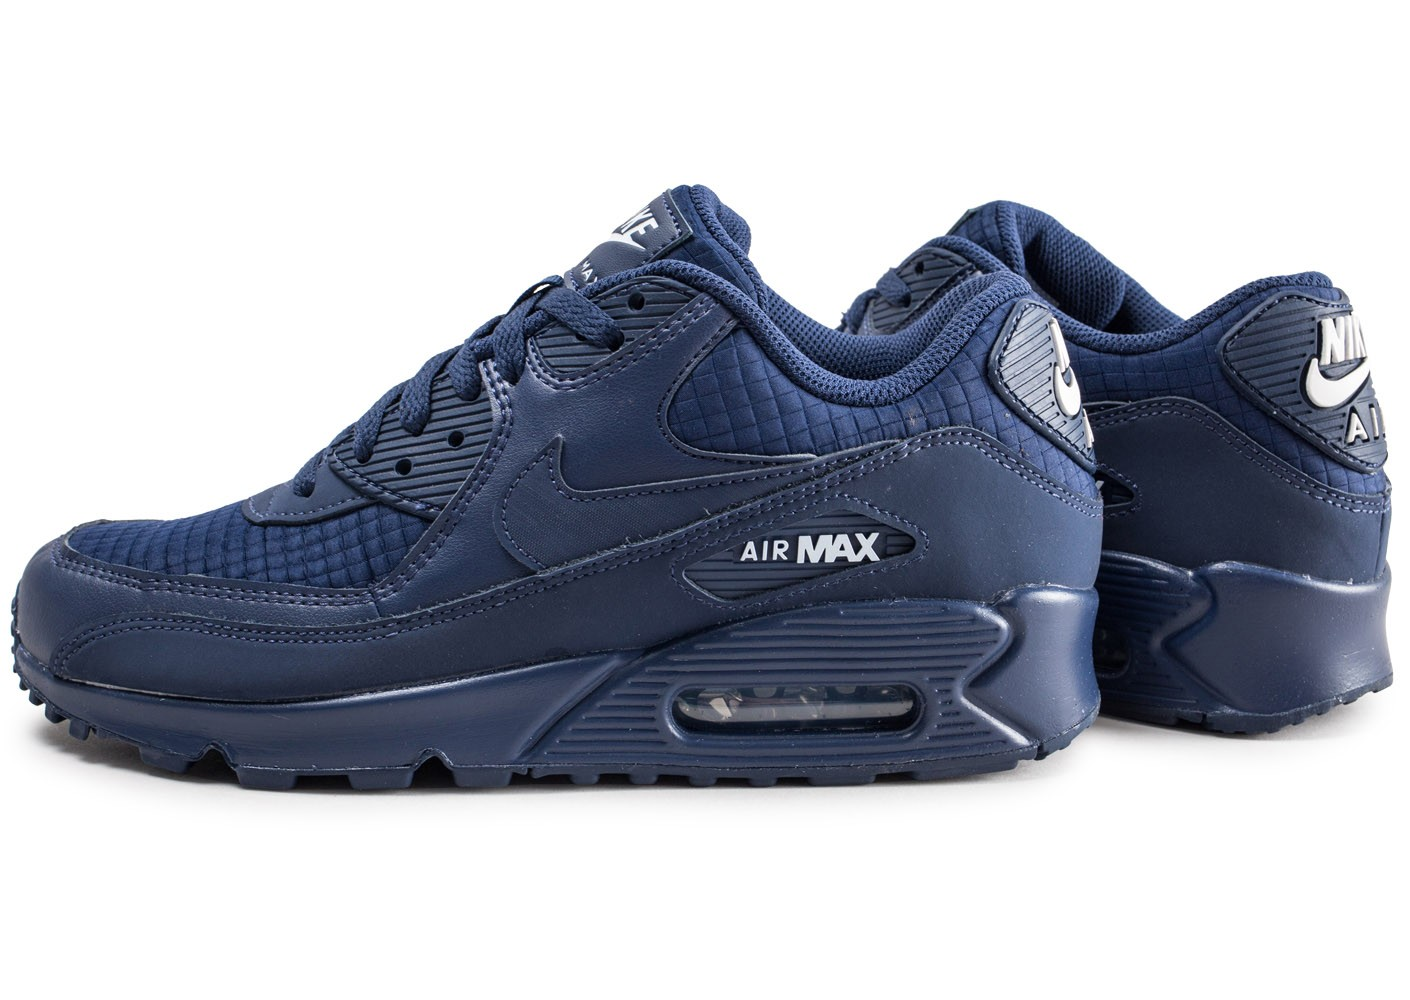 Nike Air Max 90 Essential bleu marine Chaussures Baskets